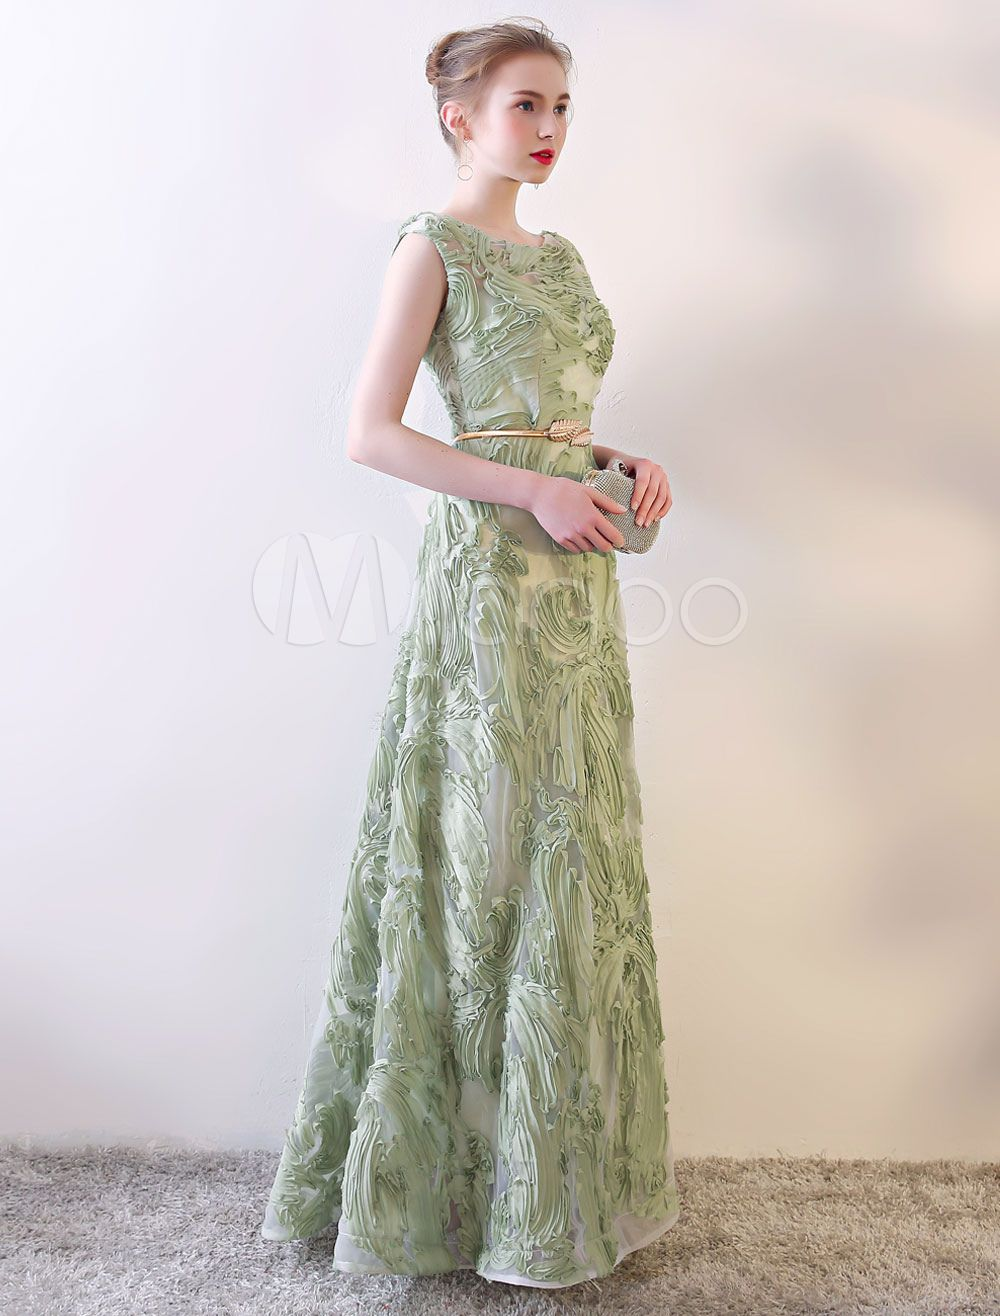 Prom Dresses Long Sage Green Sleeveless A Line Floor Length With Sash Wedding Guest Dress Green Formal Dresses Prom Dresses Long Prom Dresses [ 1316 x 1000 Pixel ]